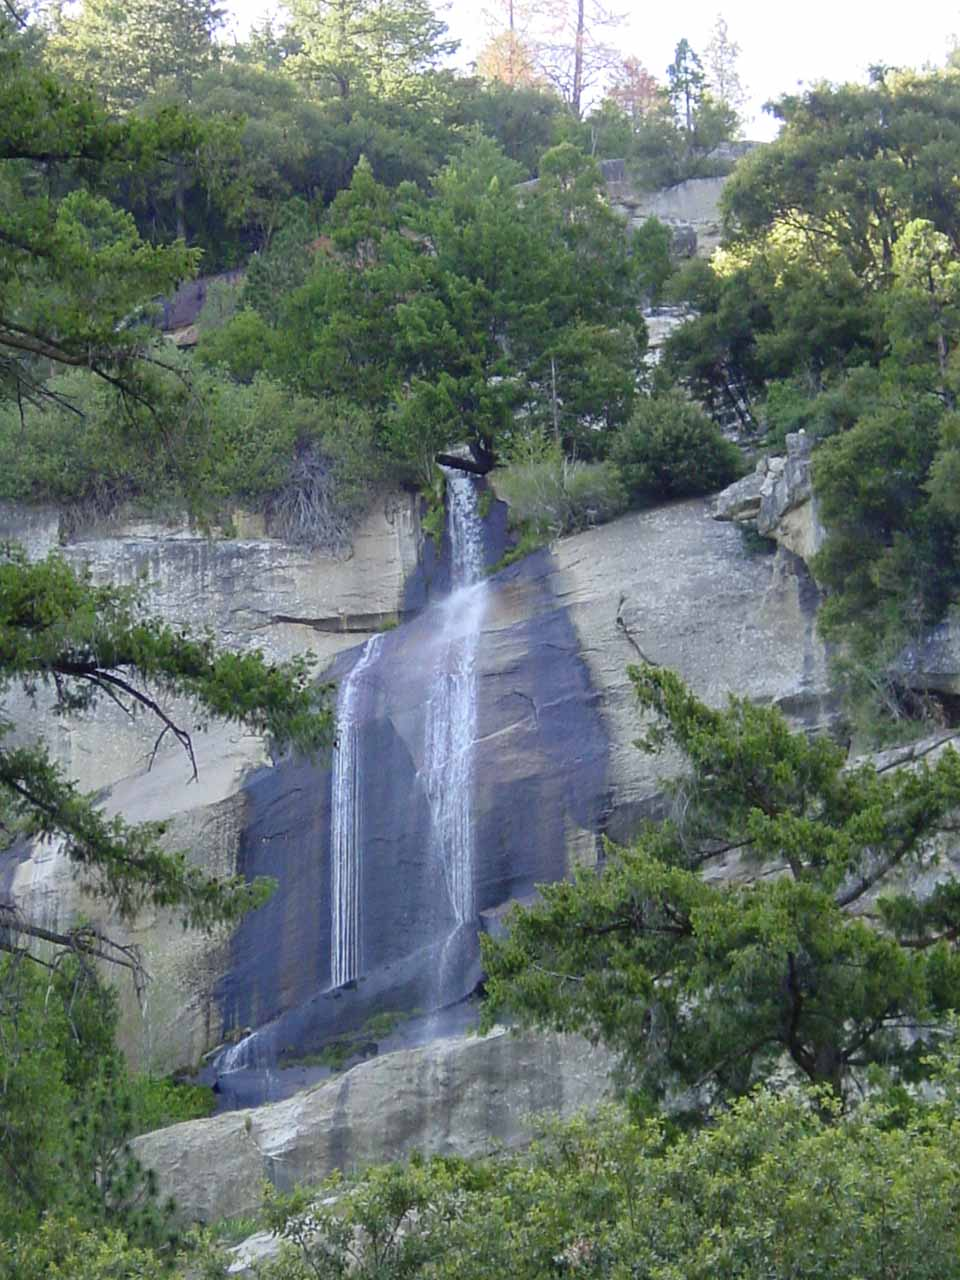 The upper section of Wildcat Falls as seen in June 2002